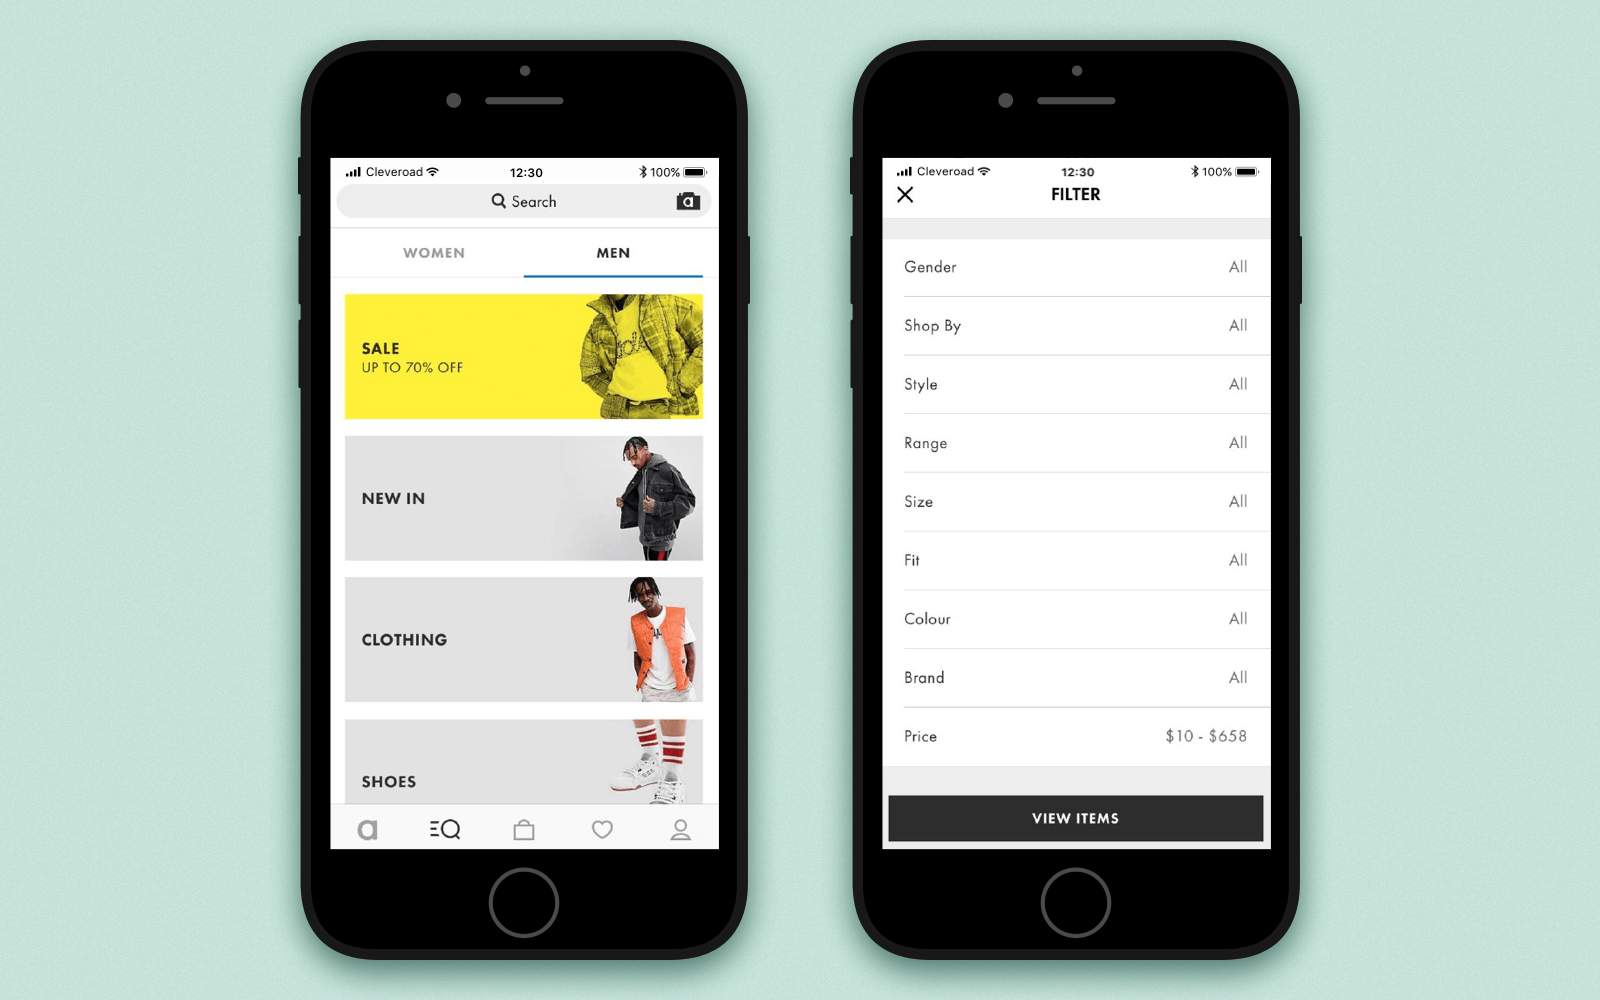 Make online shopping app with flexible search and filters